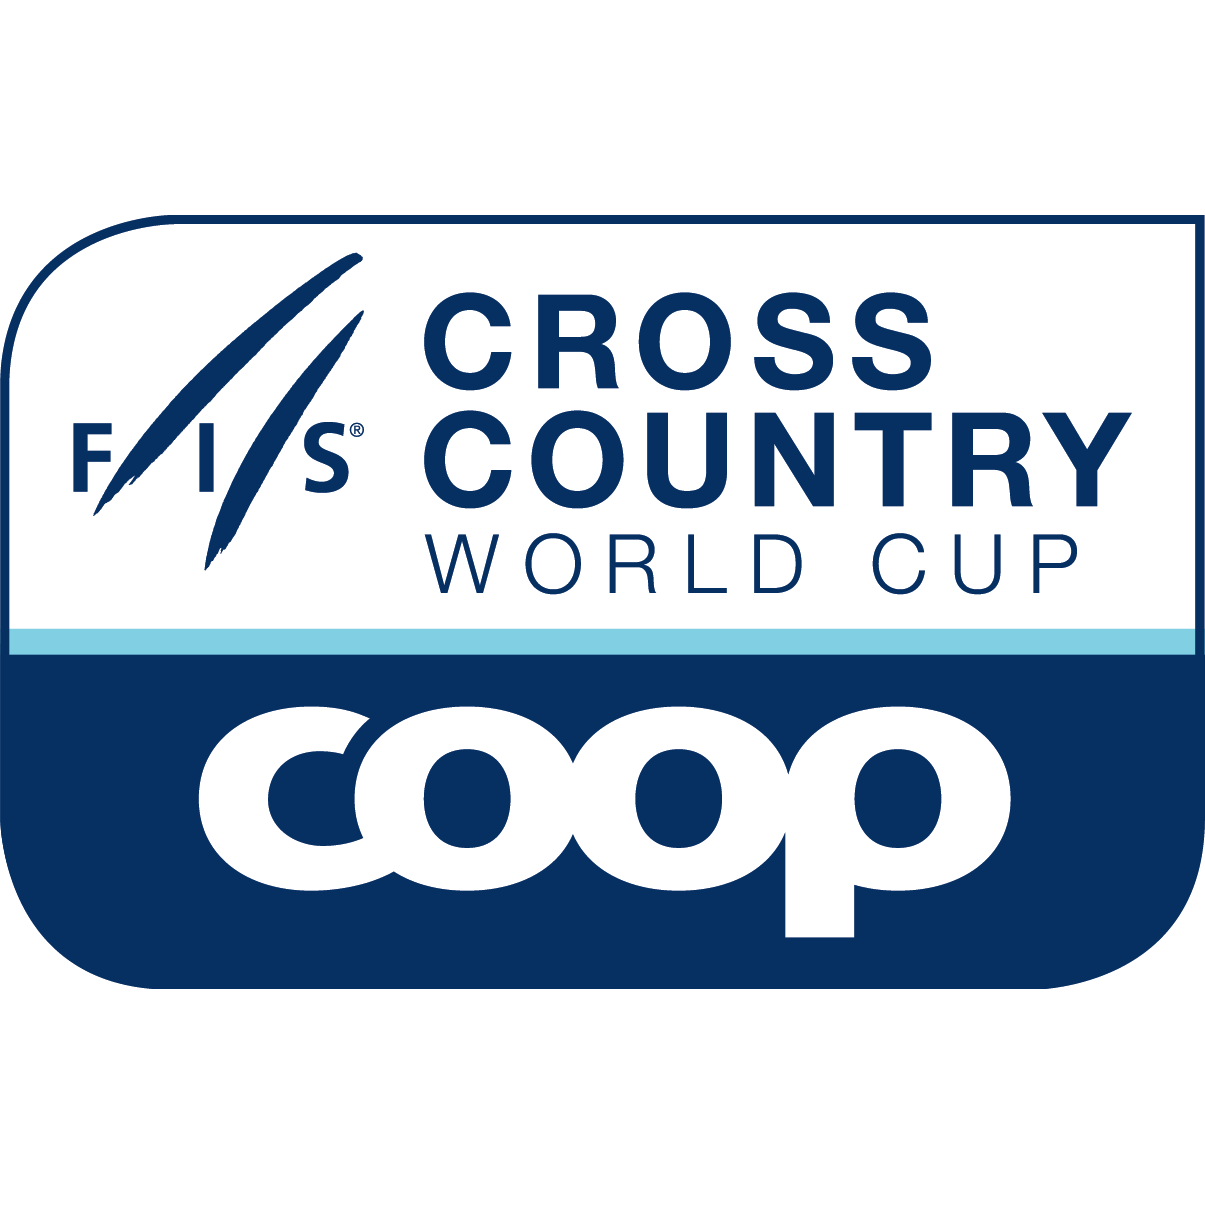 2016 FIS Cross Country World Cup